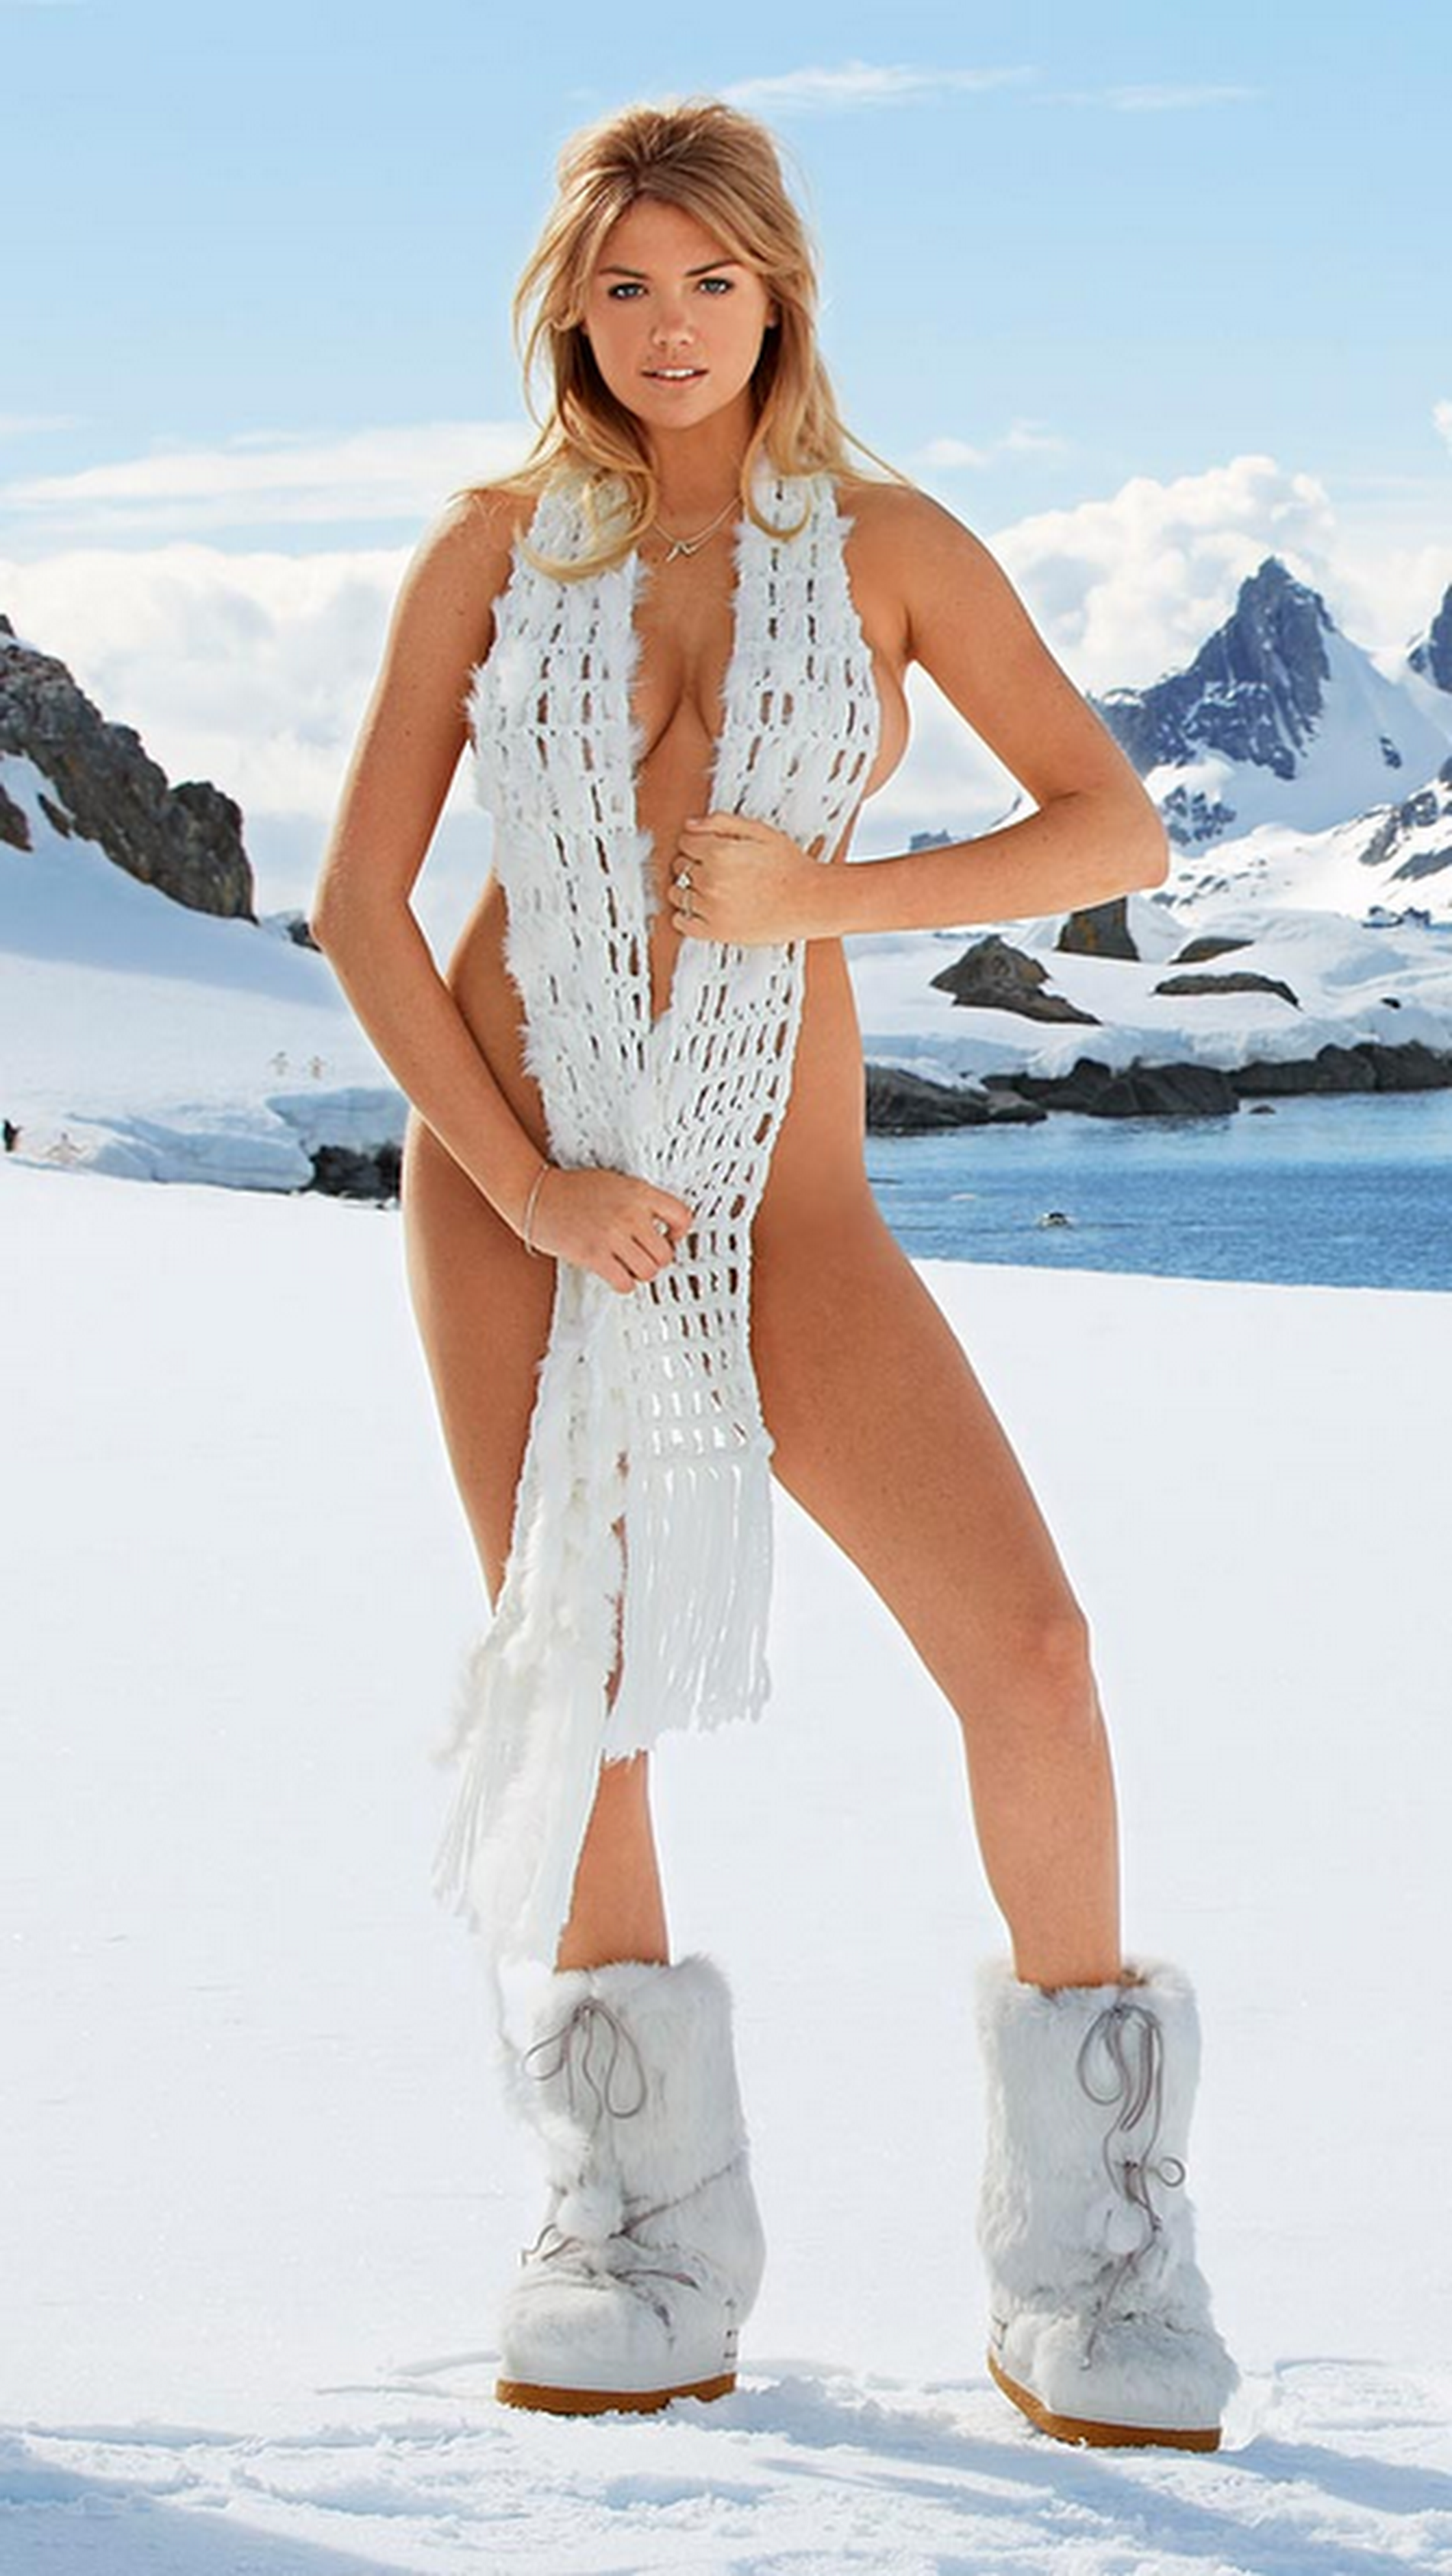 TheFappening Natalie Roser naked (51 photo), Topless, Fappening, Twitter, underwear 2019